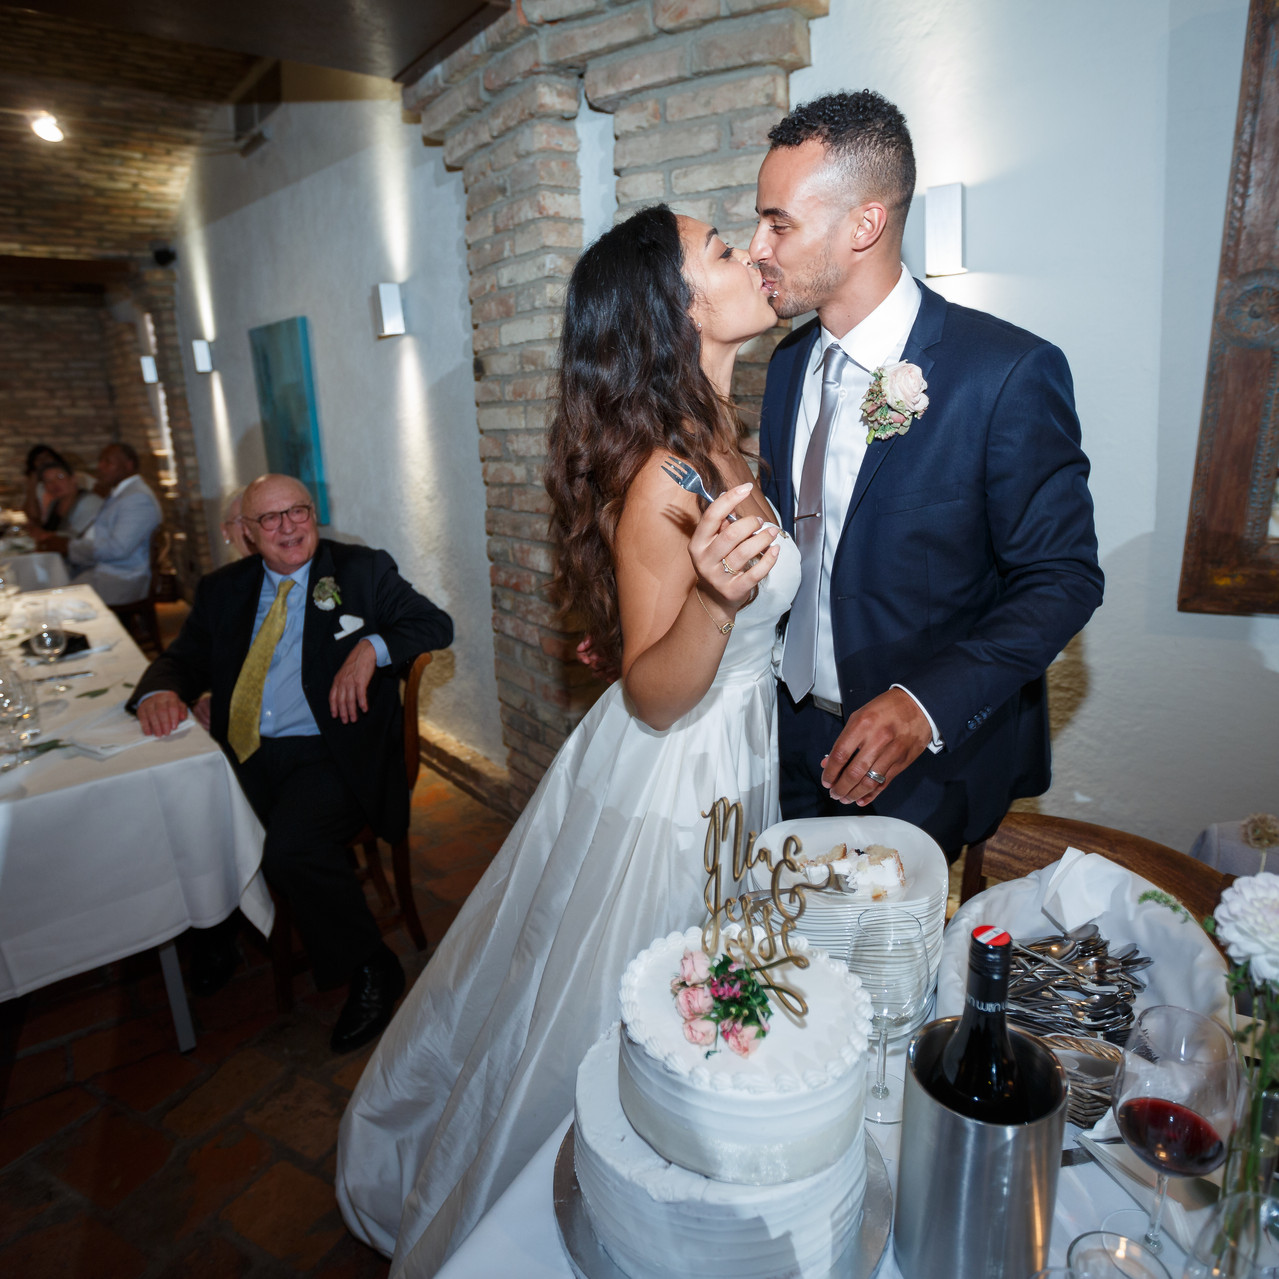 Mia Jesse Wedding September 2015 Camera One card two (196 of 511)